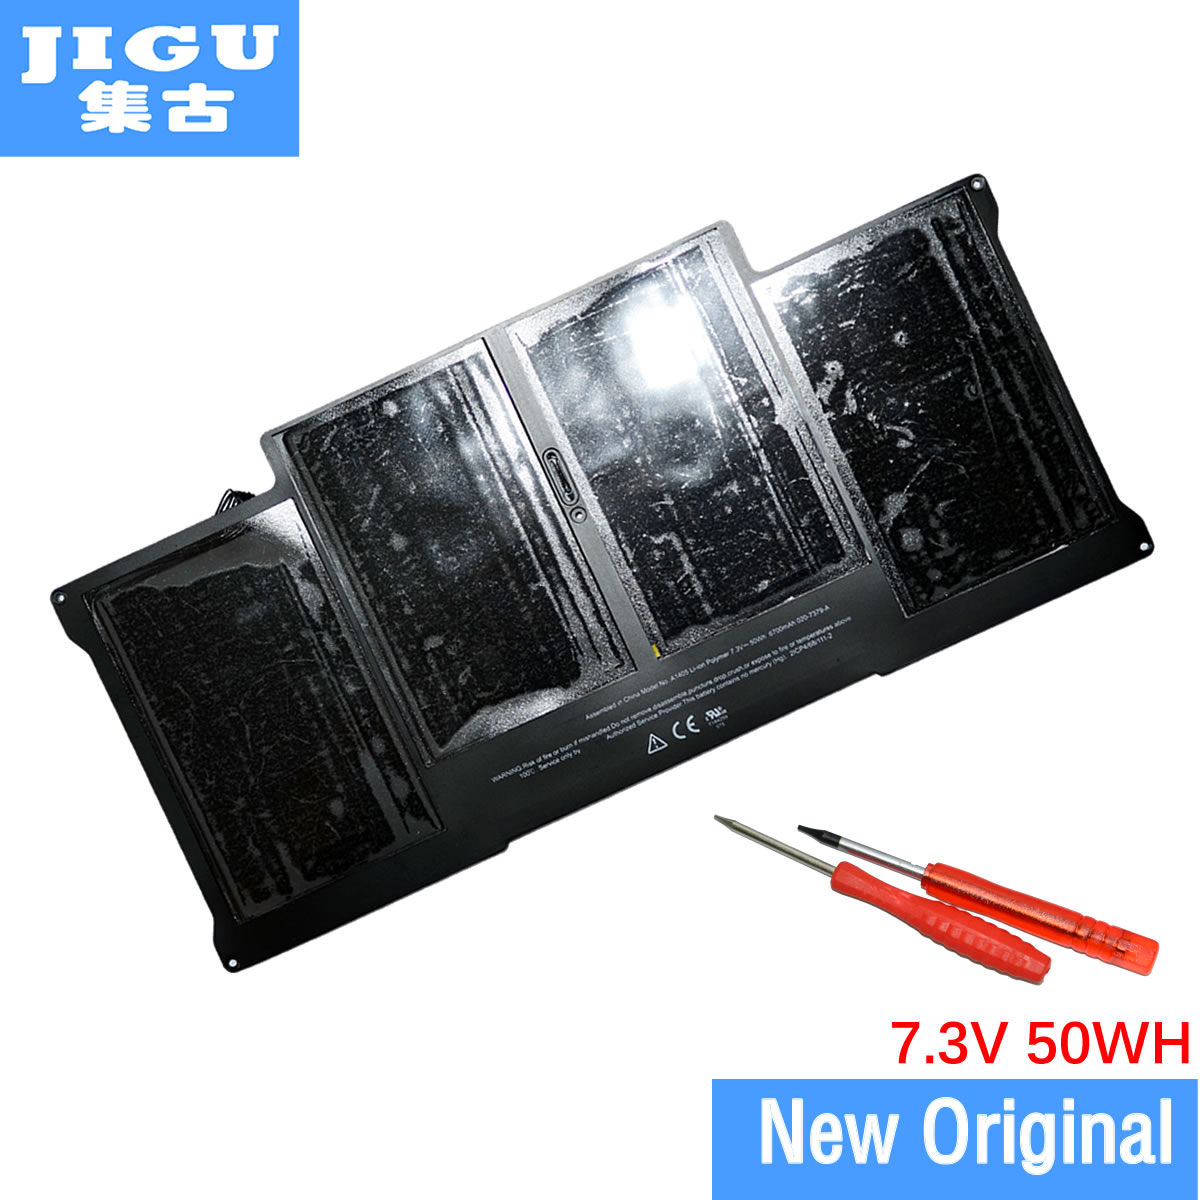 JIGU Special Price Brand New Original Genuine Battery A1405 for apple For MacBook Air 13 A1369 year 2011 & A1466 a1369 new original a1369 assembly for apple macbook air 13 lcd display assembly a1369 a grade new and original 2011 year